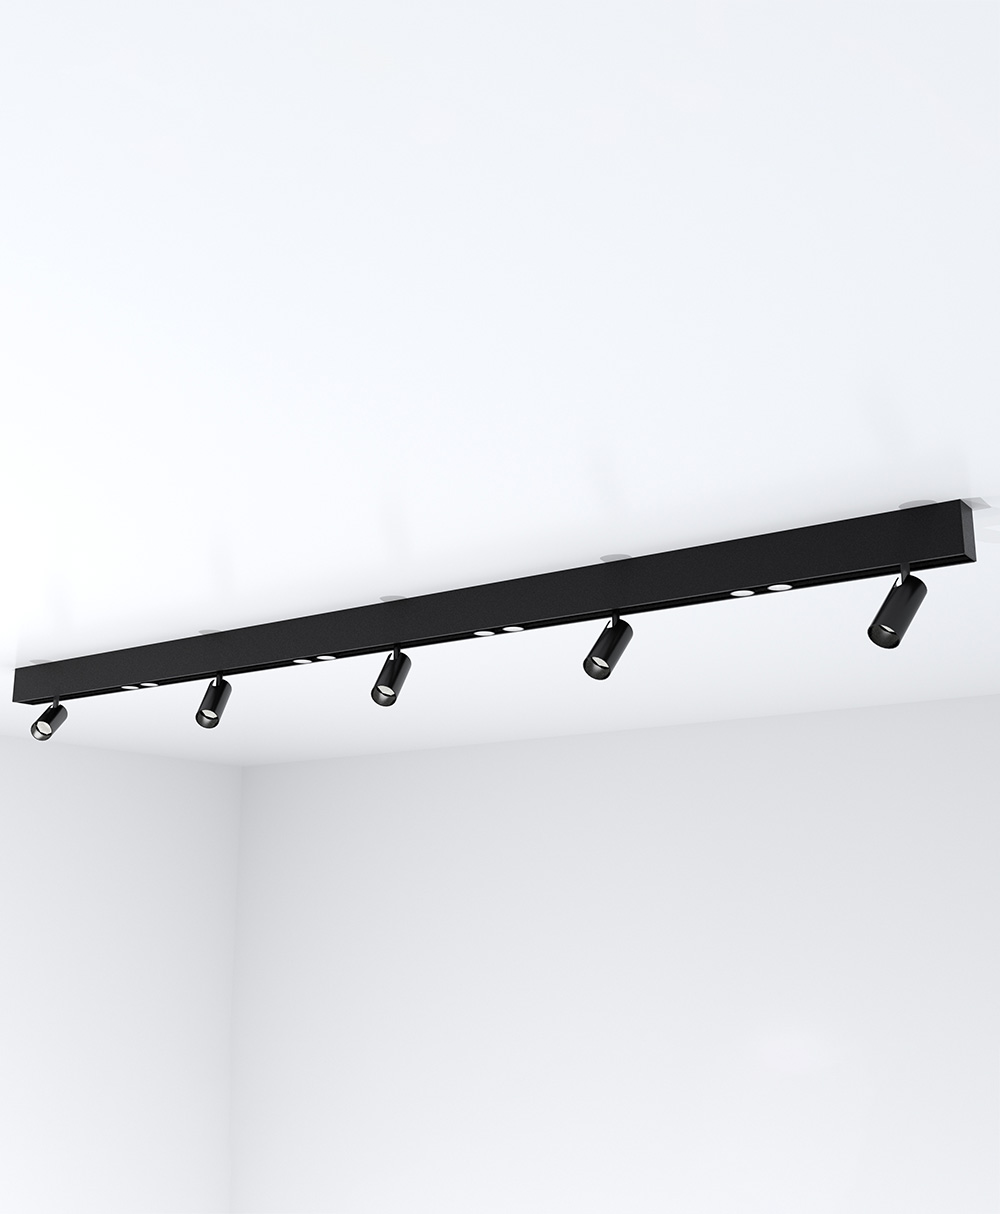 6' Surface-Mount KLICK Track with 5 Adjustable Spotlights and 4 Double Spots, 4550 Lumens, 3500 K